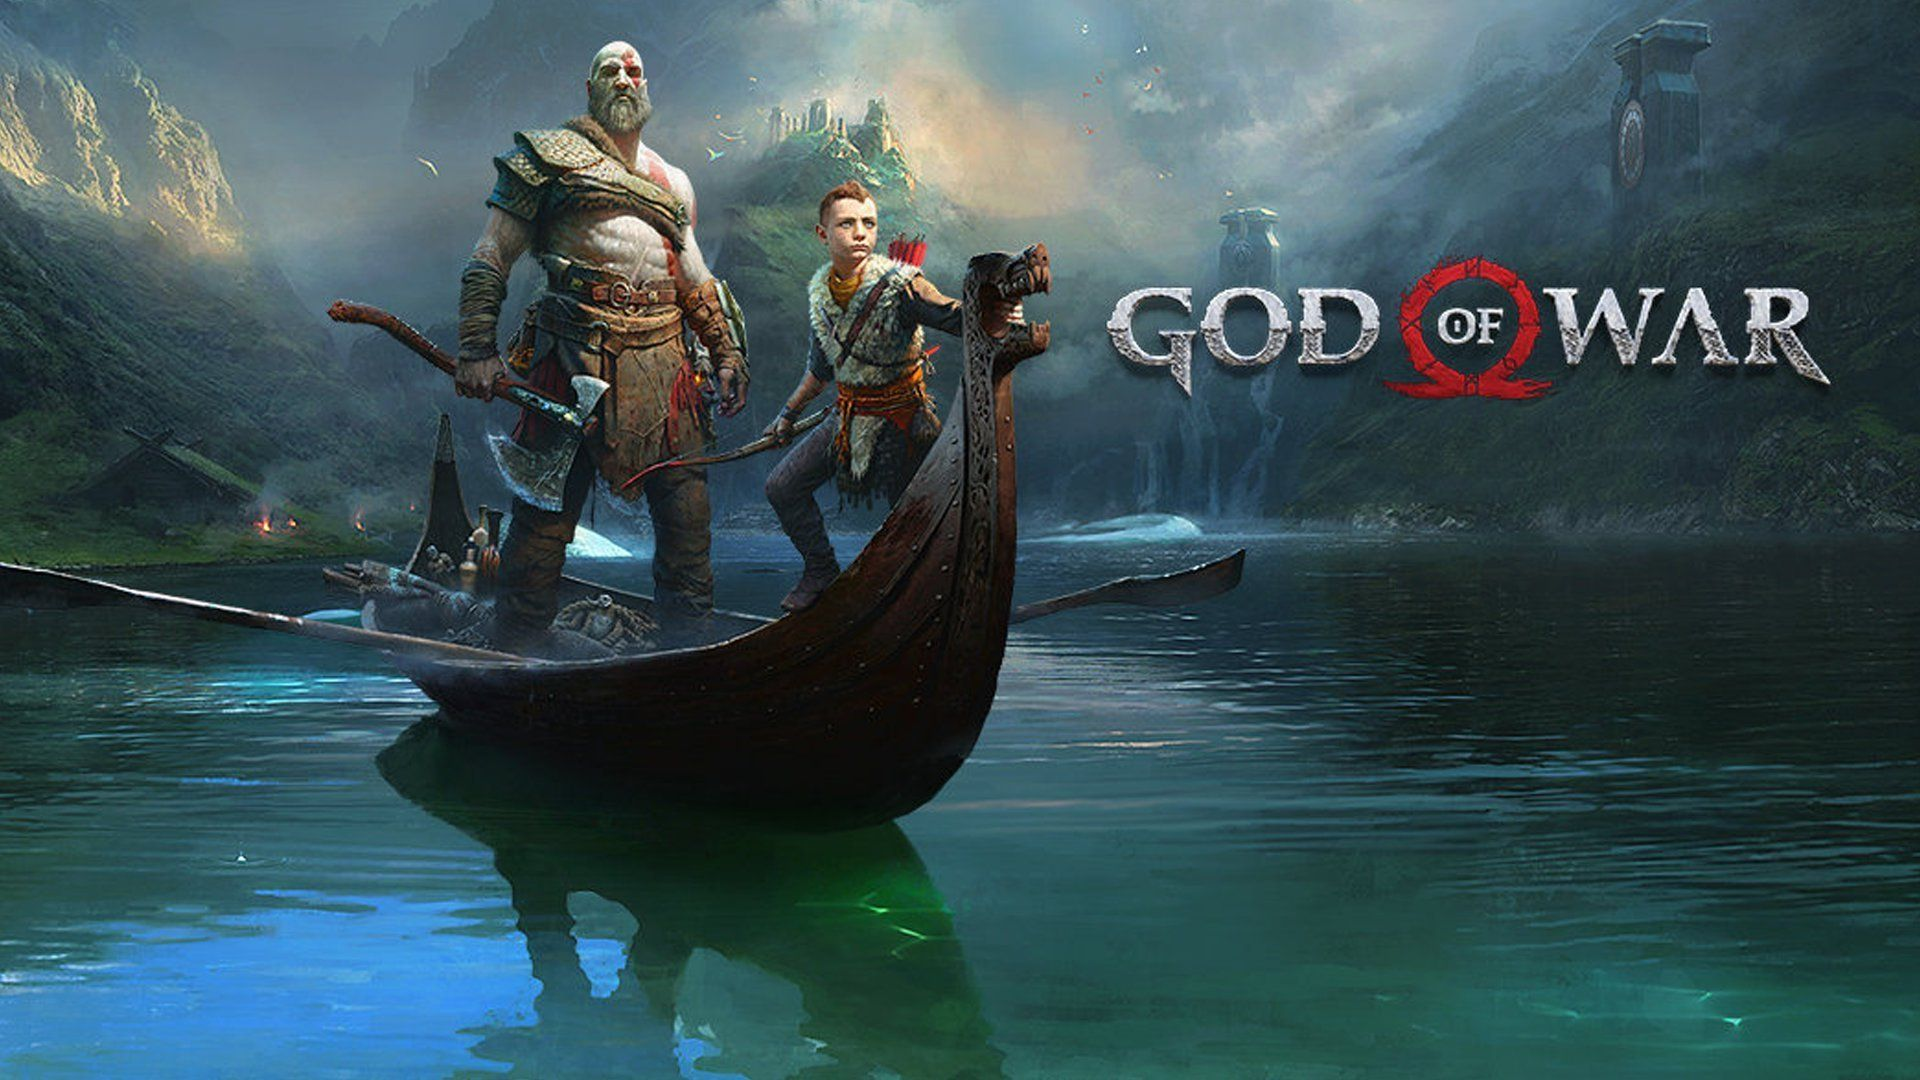 God Of War Hd Wallpapers 2018 Ps4 Games Images